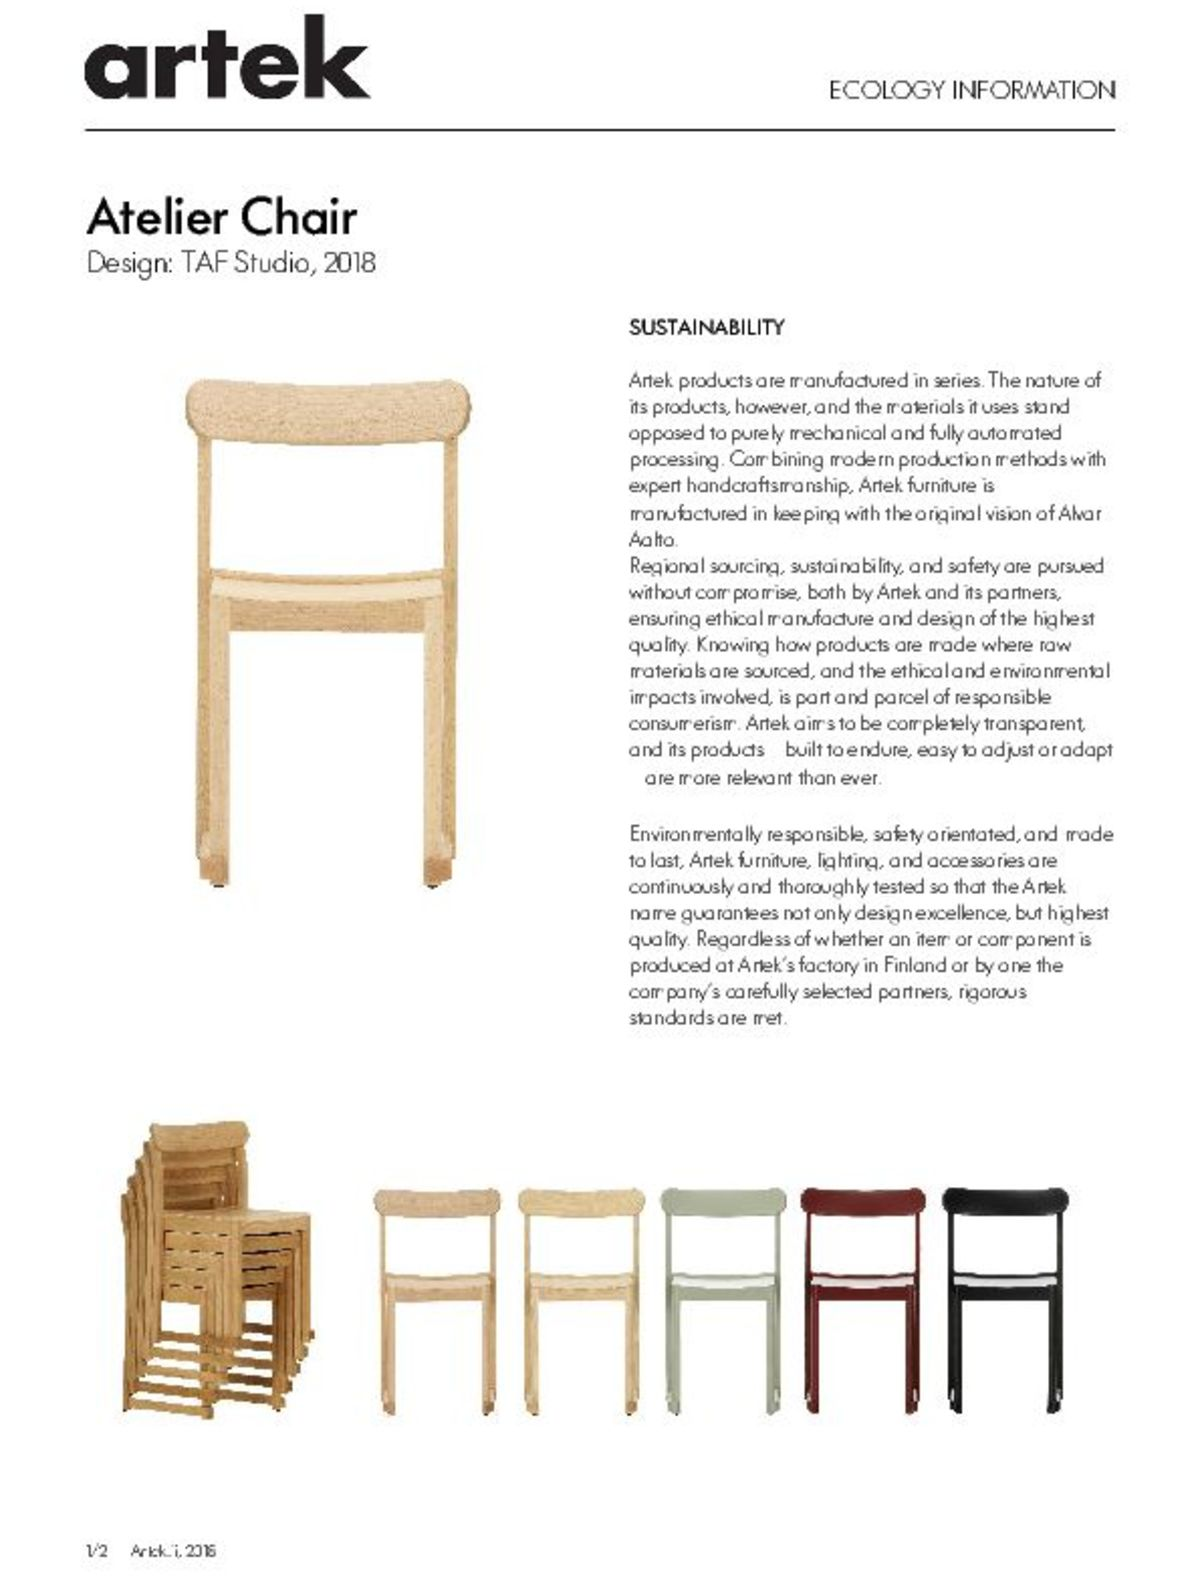 Ecology-Document-Atelier-Chair-130826107